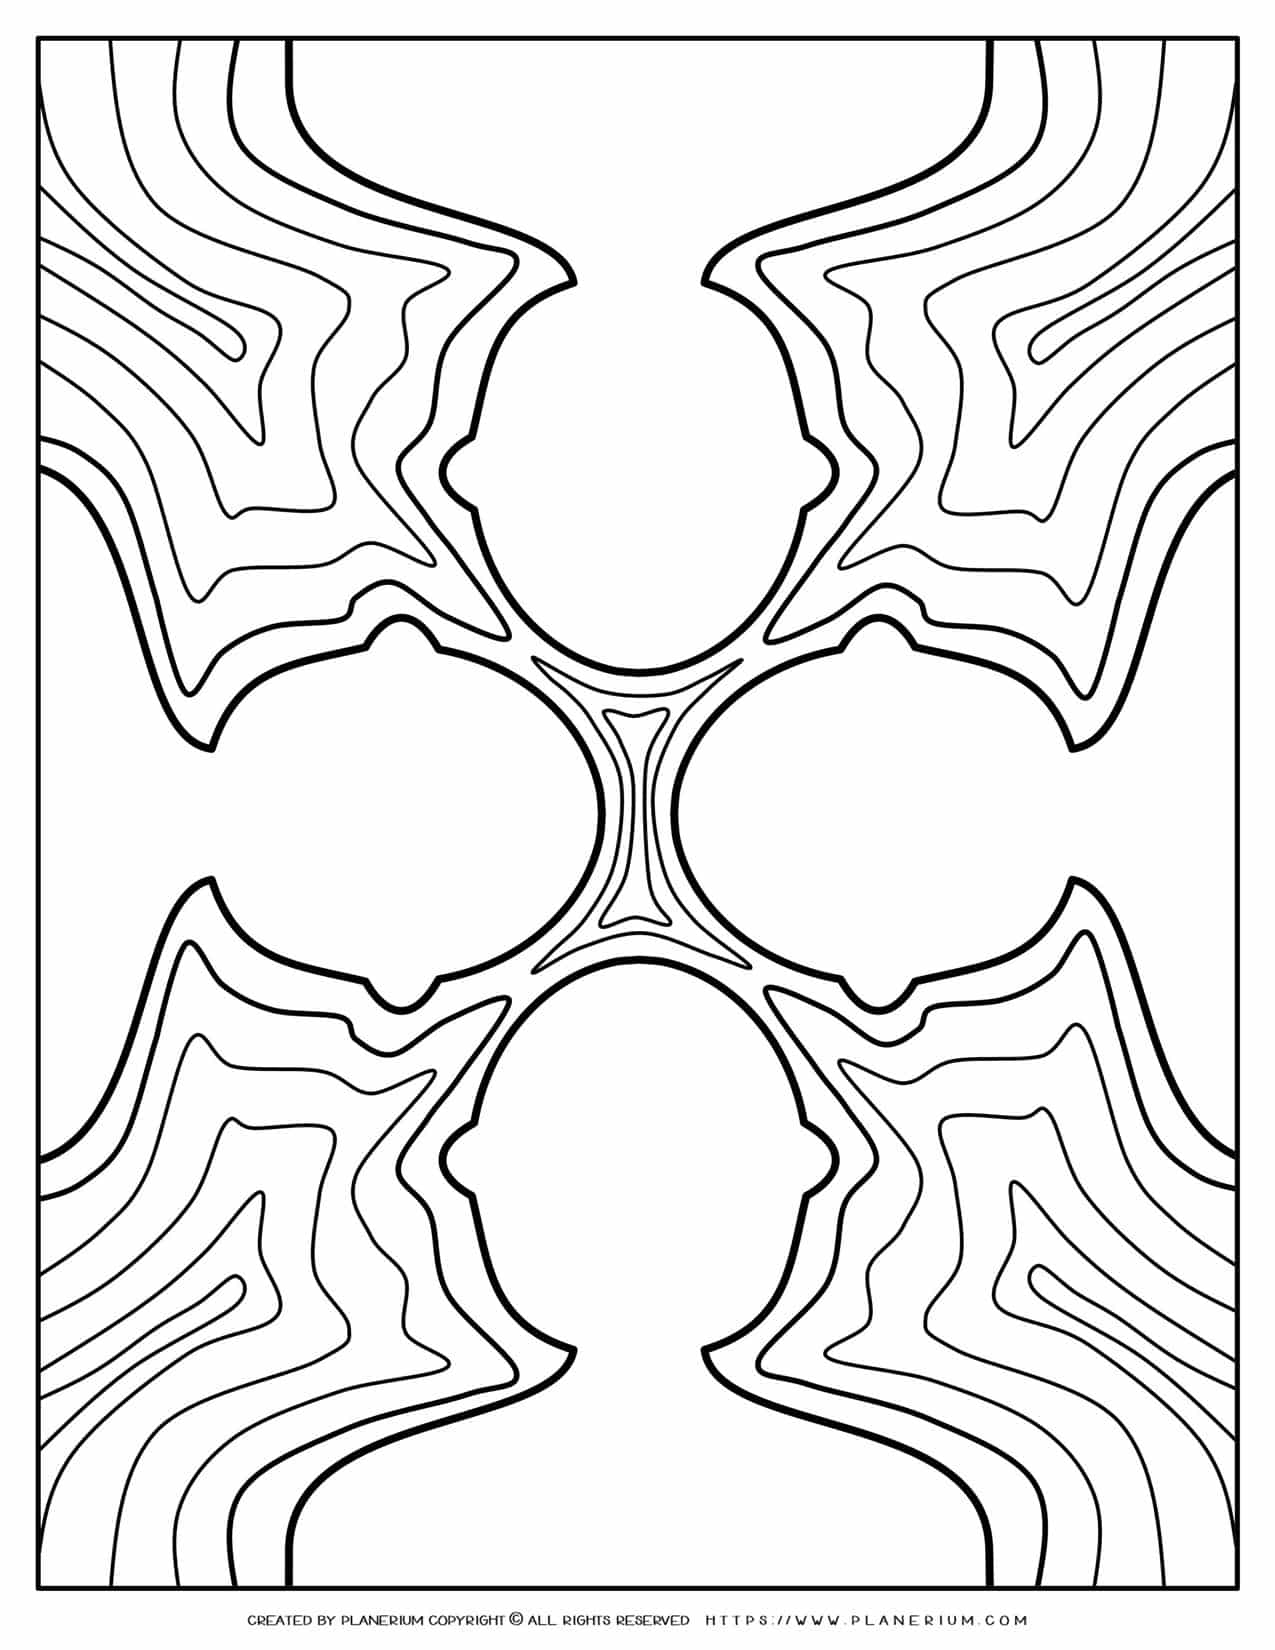 Adult Coloring Pages - Four White Figures on Shallow Water   Planerium